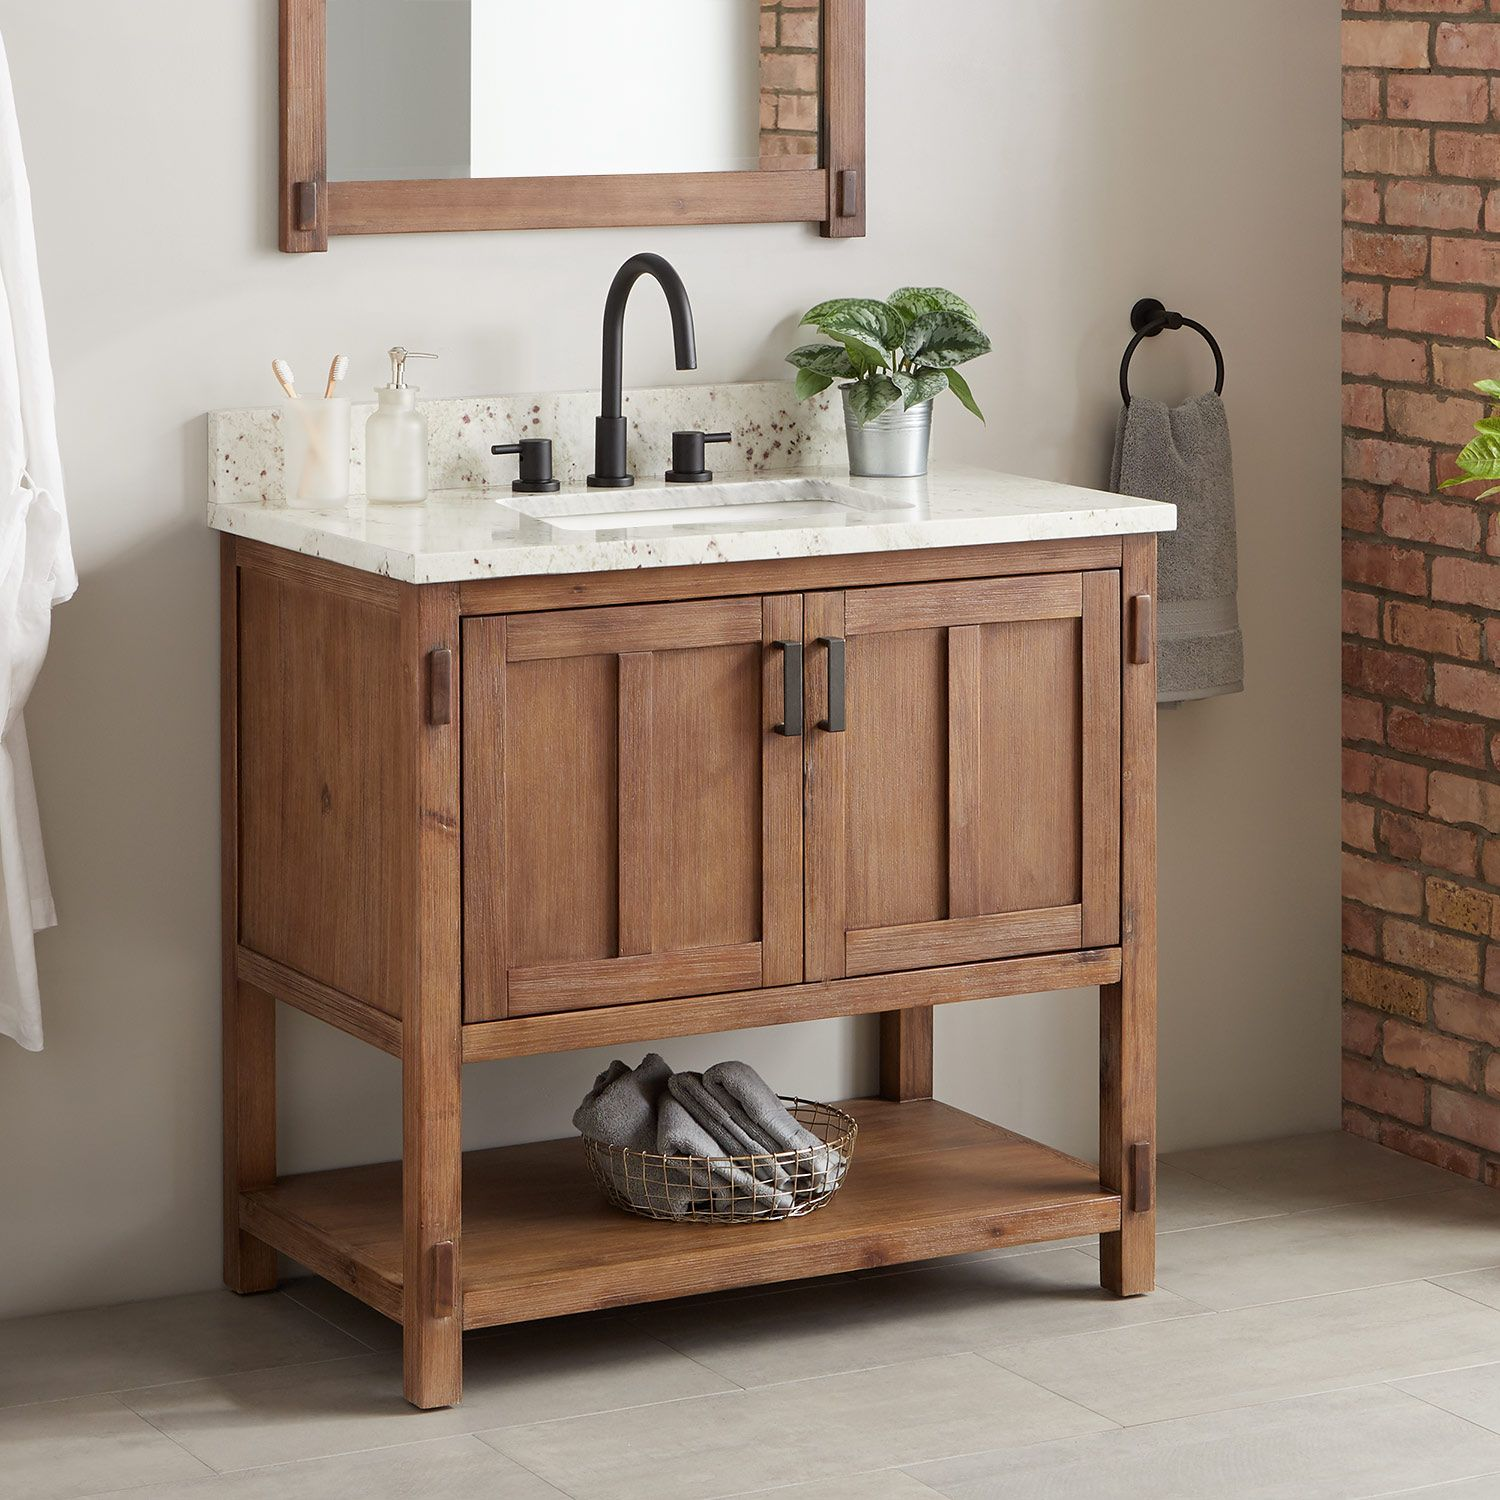 30 Morris Console Vanity For Rectangular Undermount Sink Wood Vanities Bathroom Vanities Wooden Bathroom Vanity Single Bathroom Vanity Vessel Sink Vanity